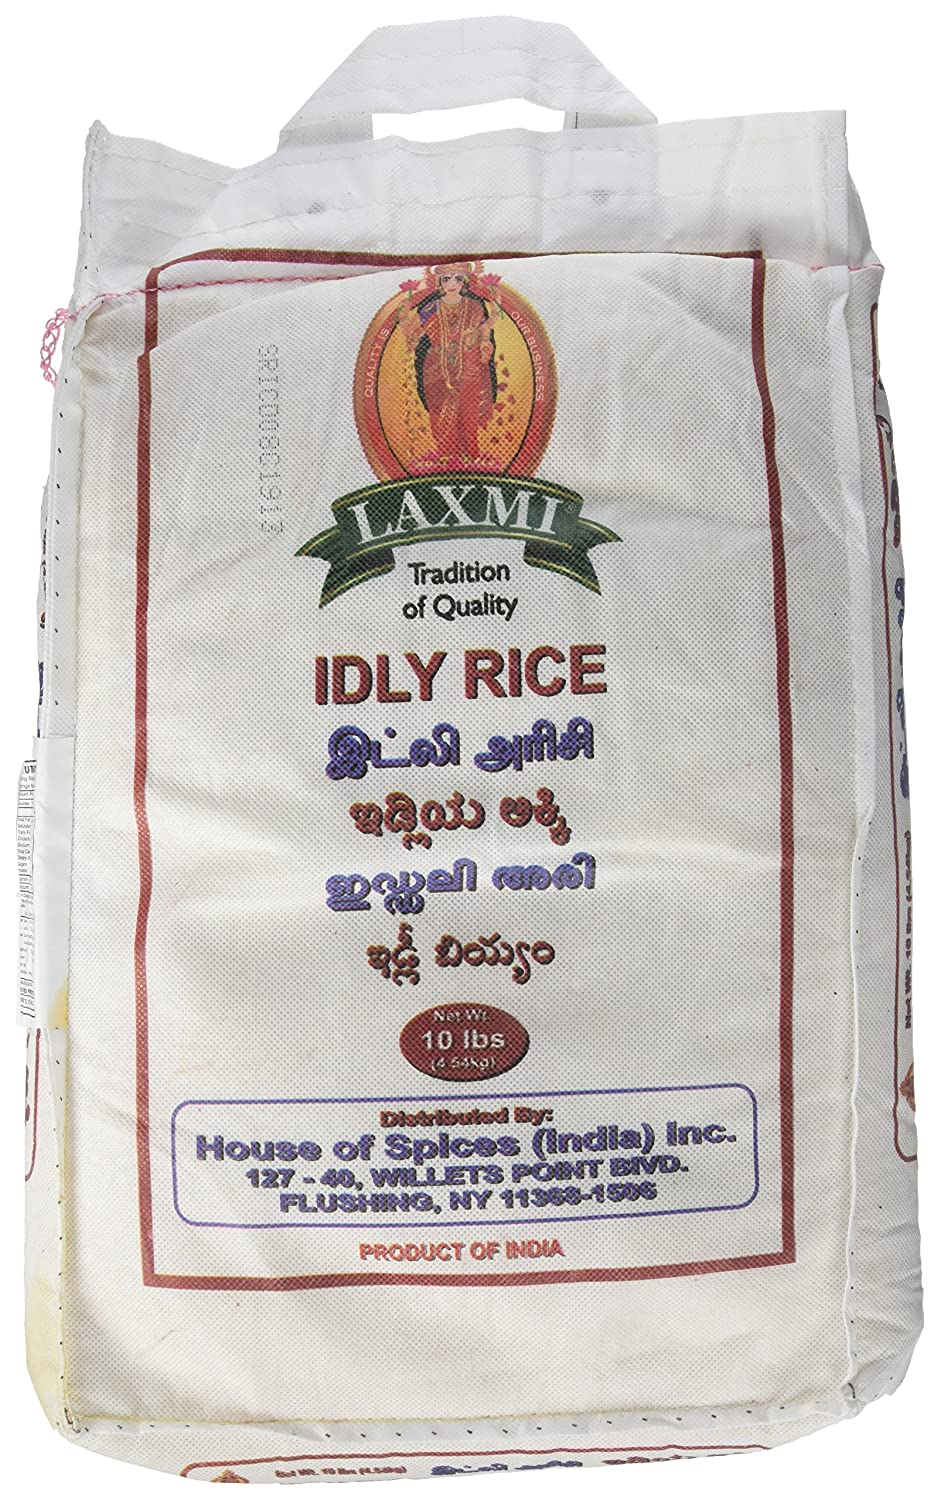 Laxmi Spring new work one after another Natural Idli Rice - 10 Spices of House Pounds National products